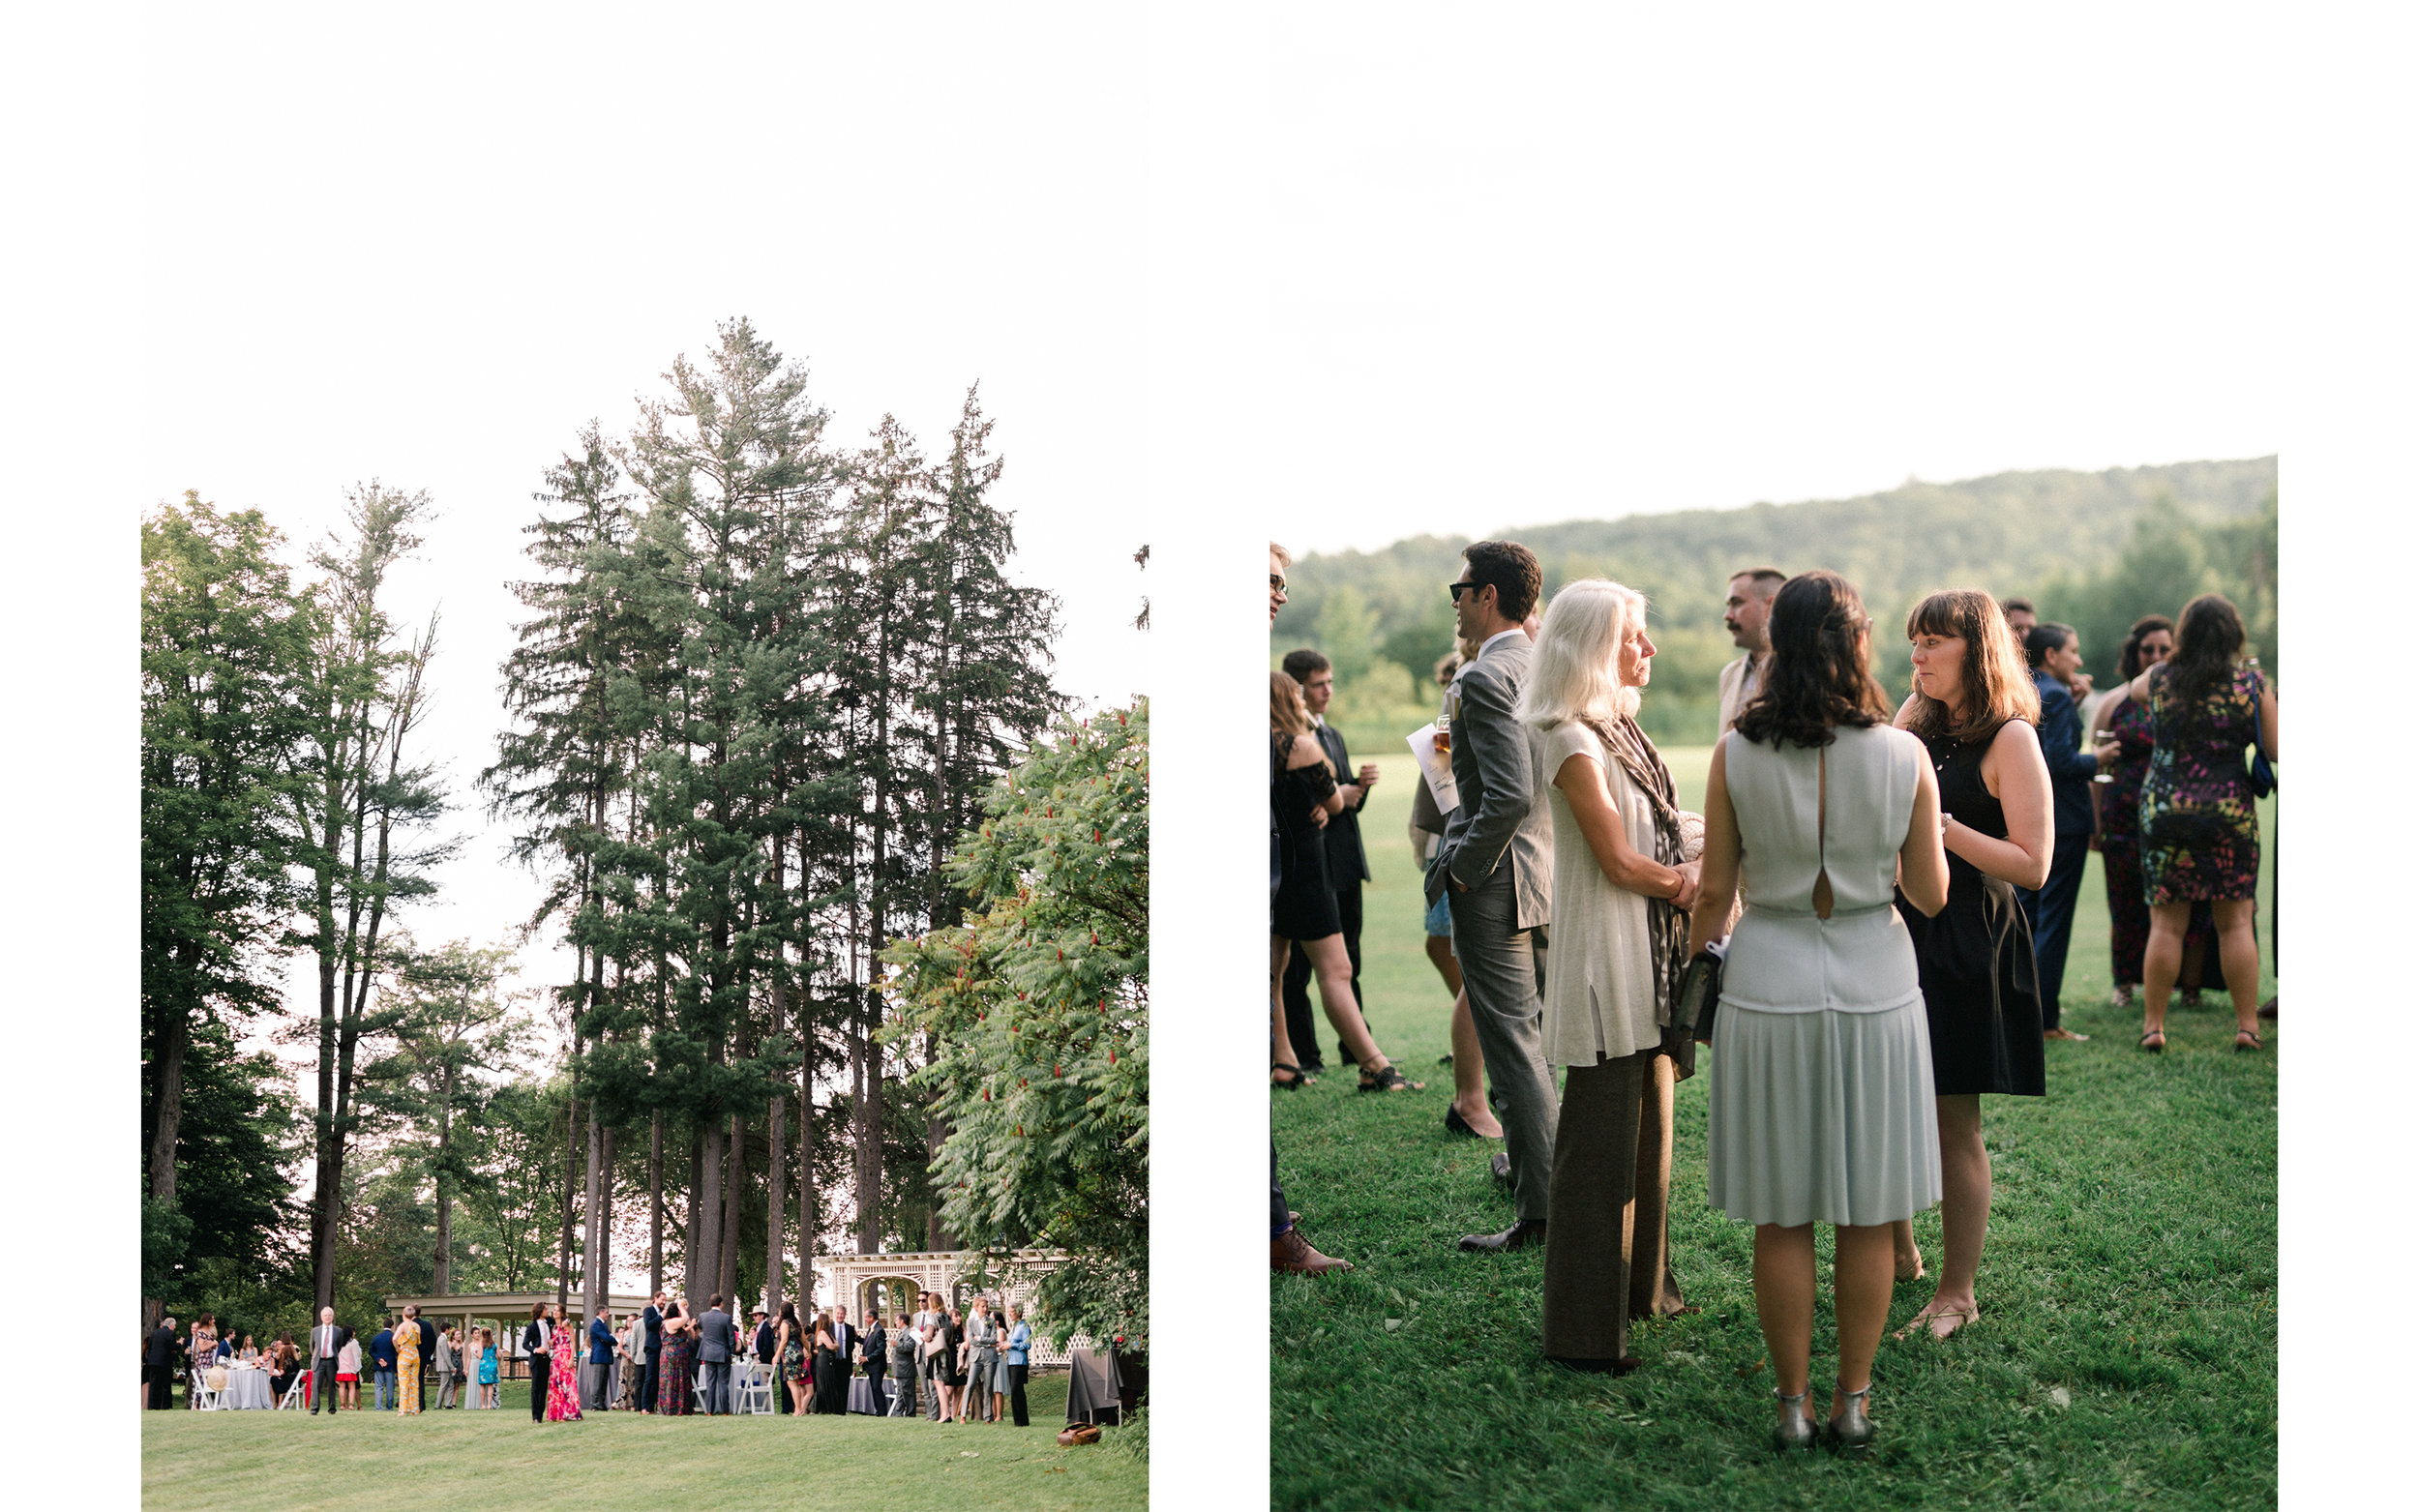 Berkshires Wedding Fine Art Wedding Photographer_Meg Haley Photographs_026.jpg